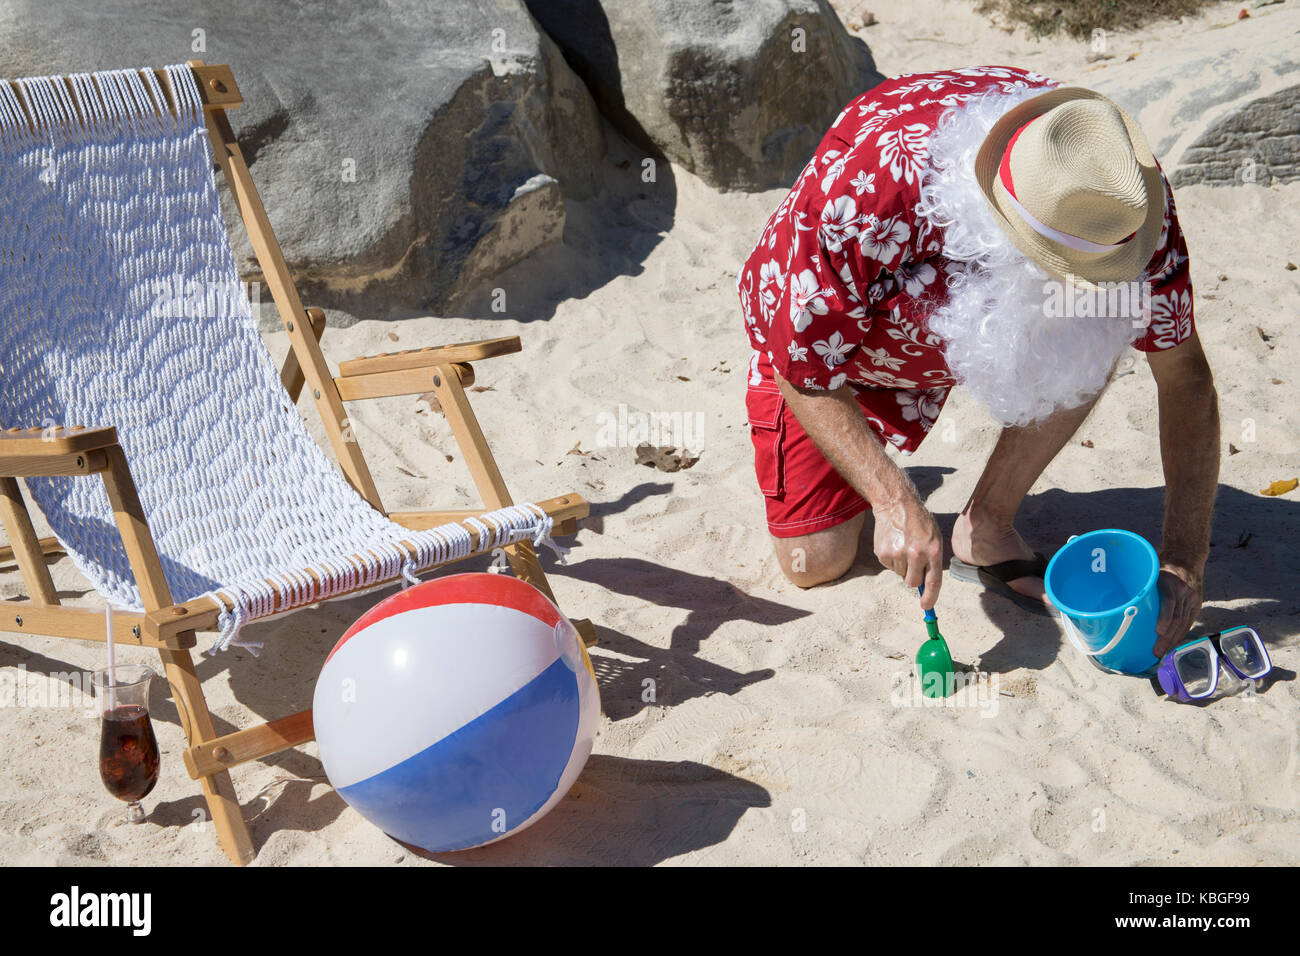 4844bbfb Santa Claus in red swimming trunks ans Hawaiian shirt lounging on sandy  beach with straw hat and sunglasses playing with shovel and pale.